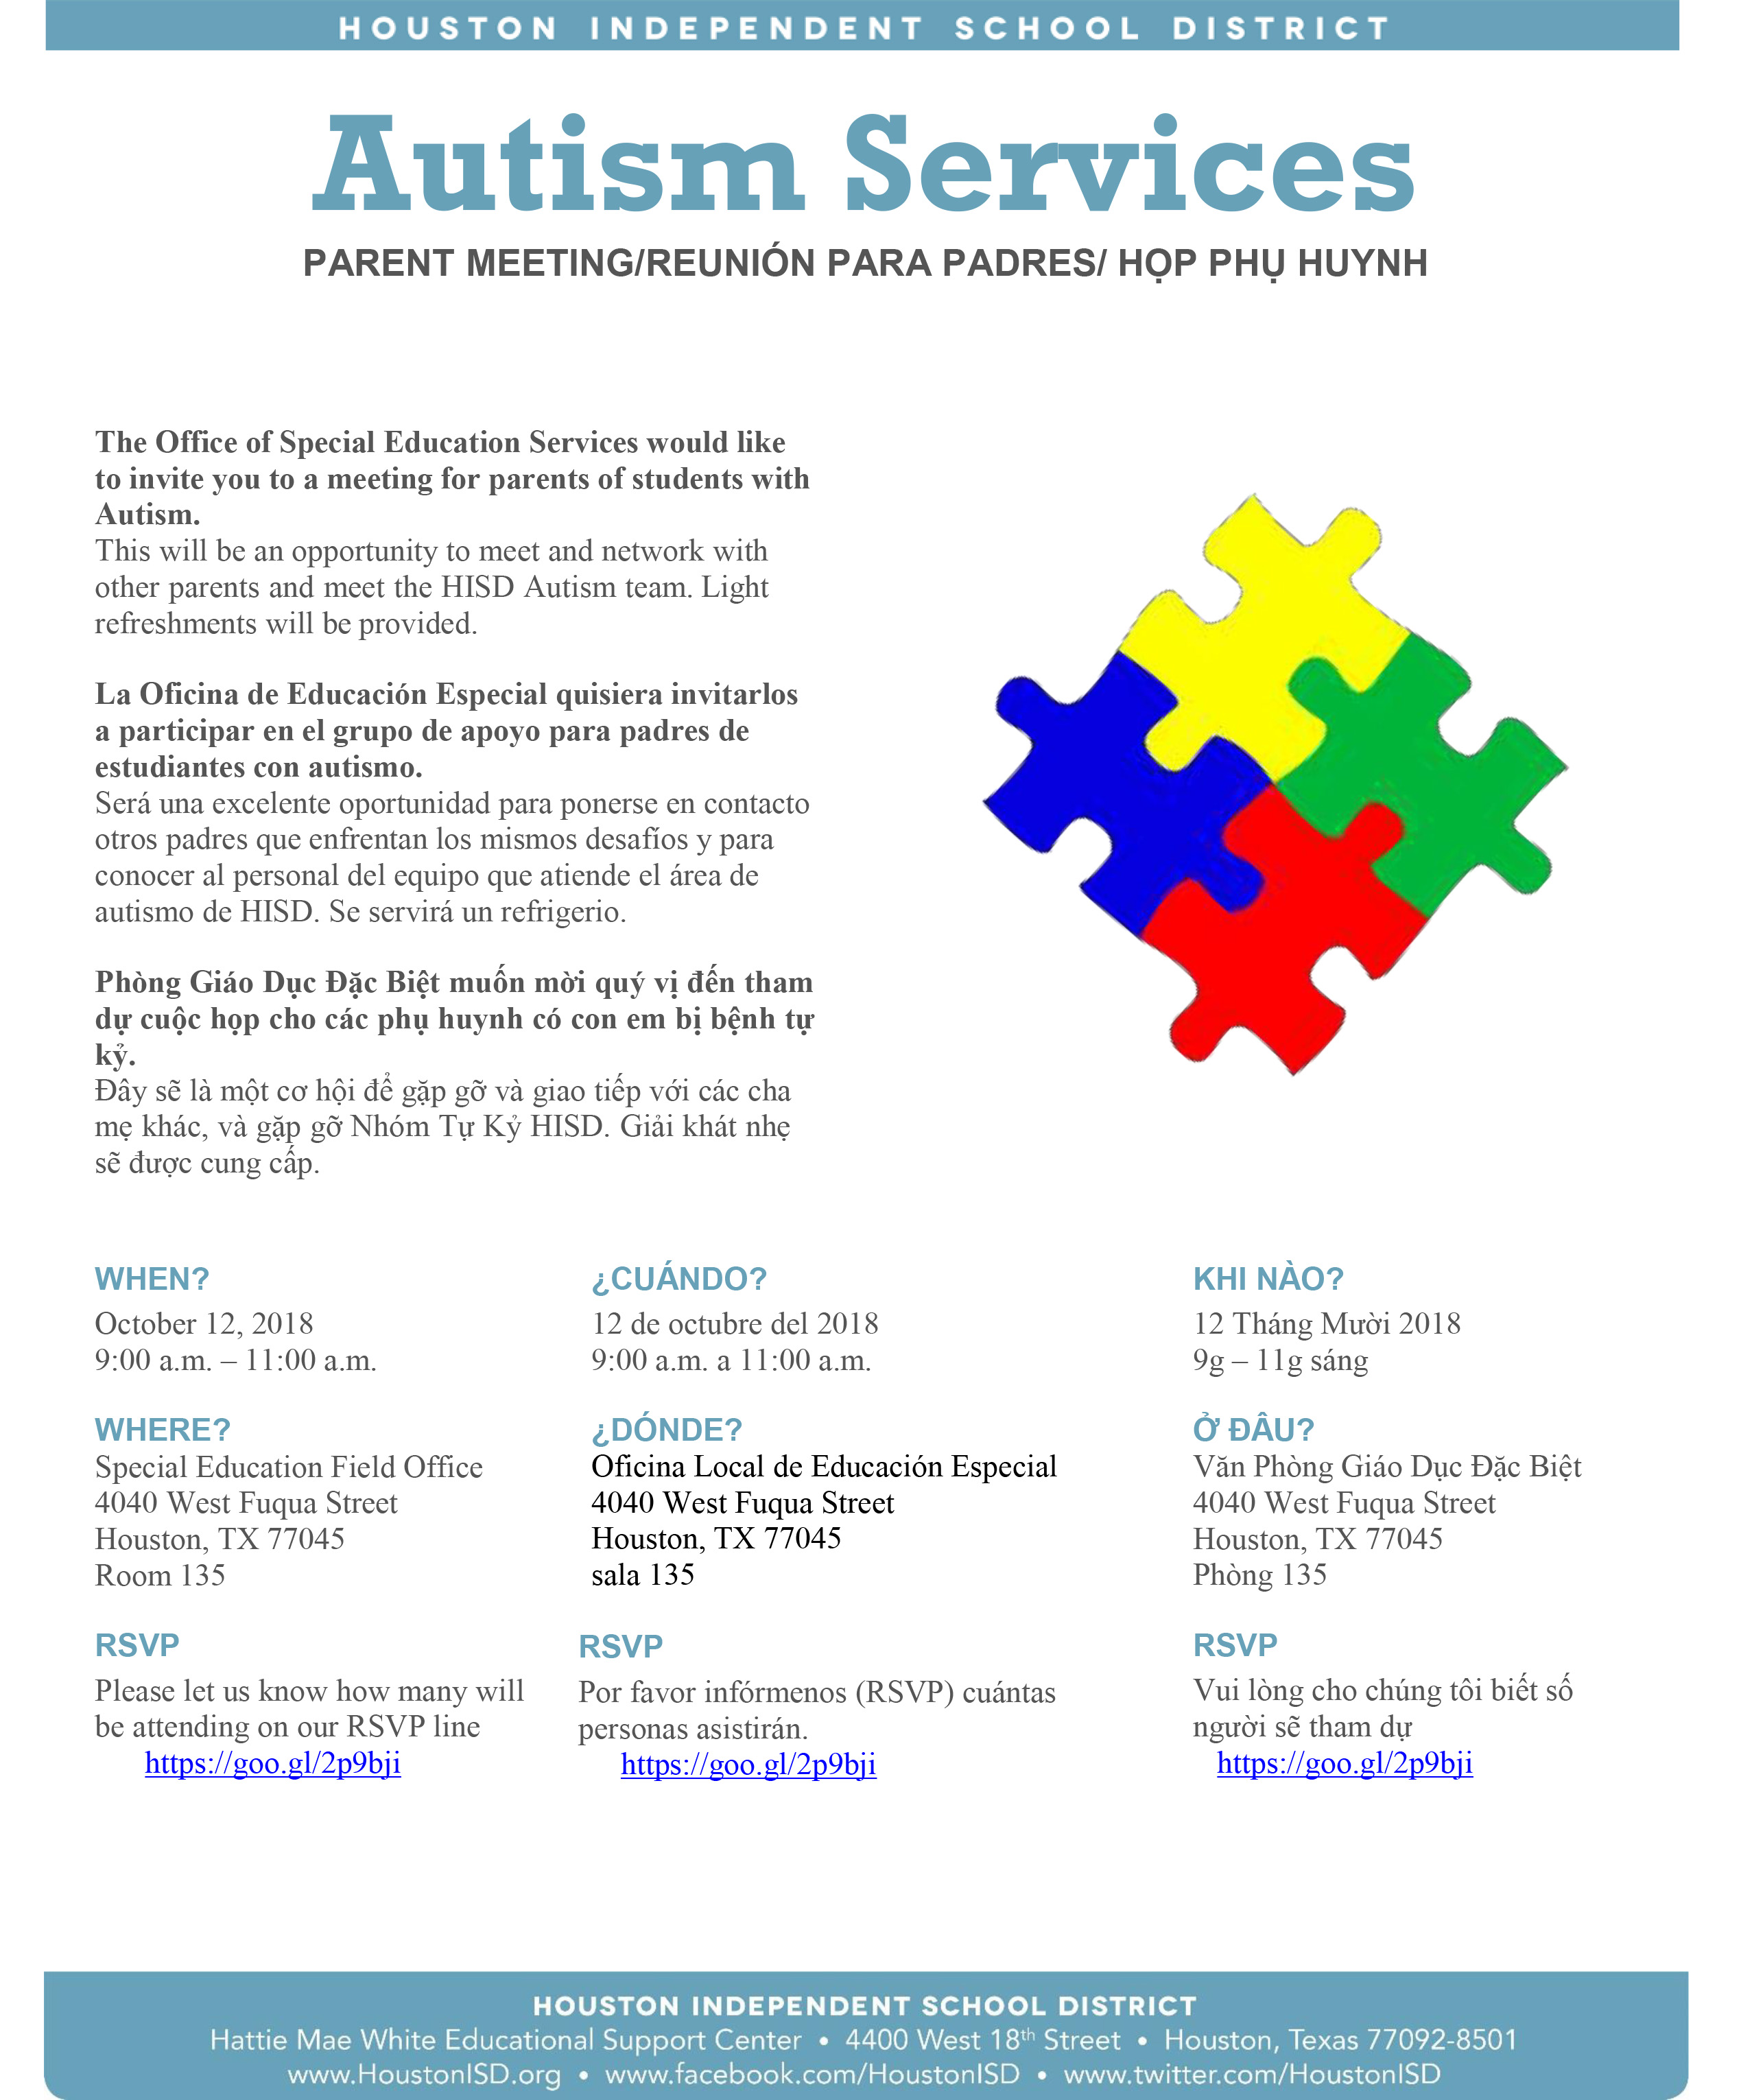 Parents Invited To Autism Services Meeting On Oct 12 News Blog